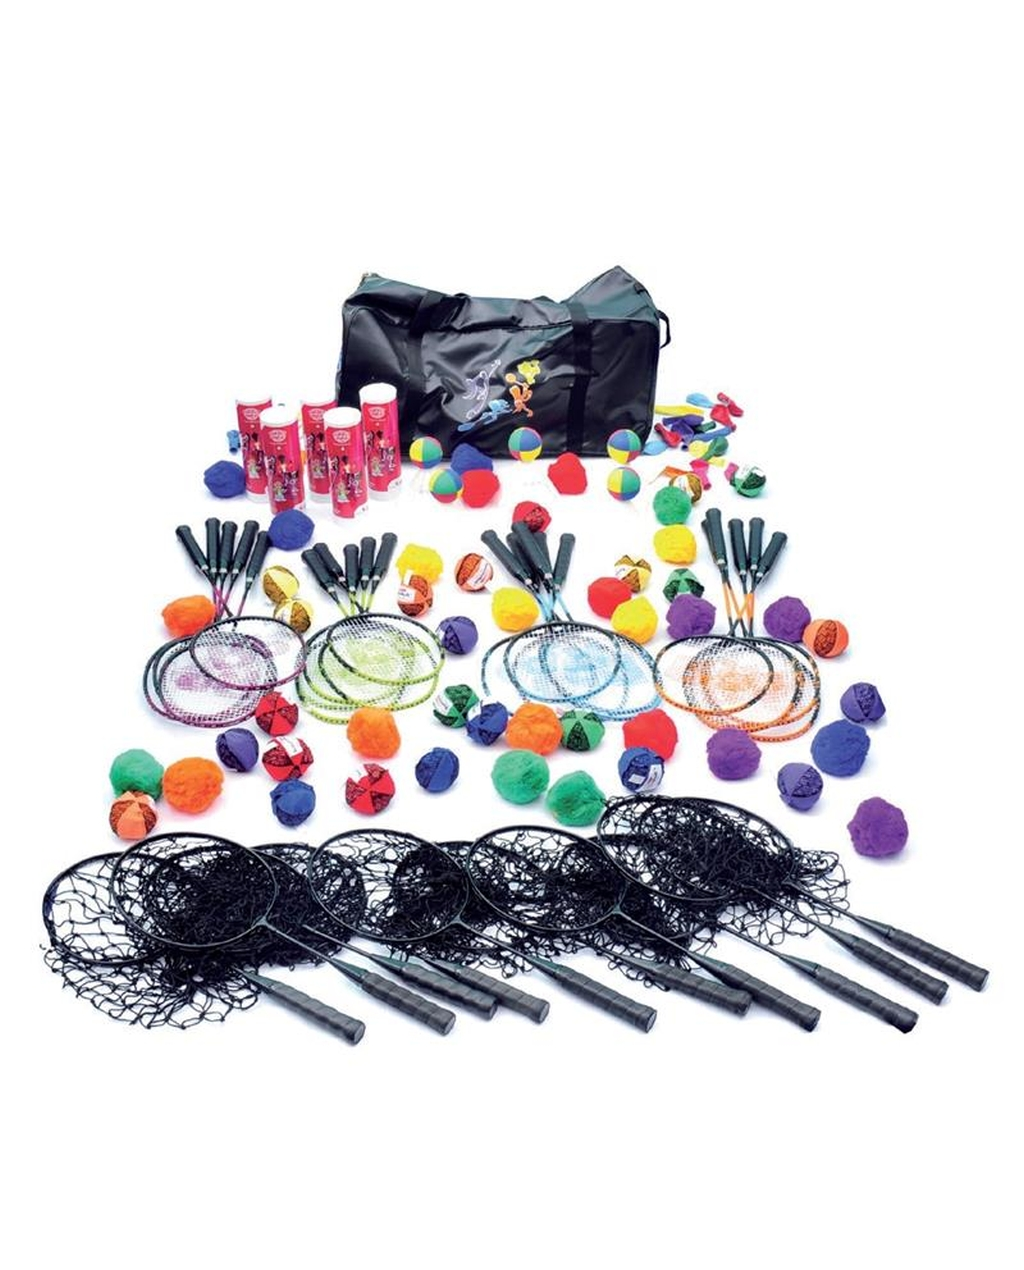 Racket Pack Primary Equipment